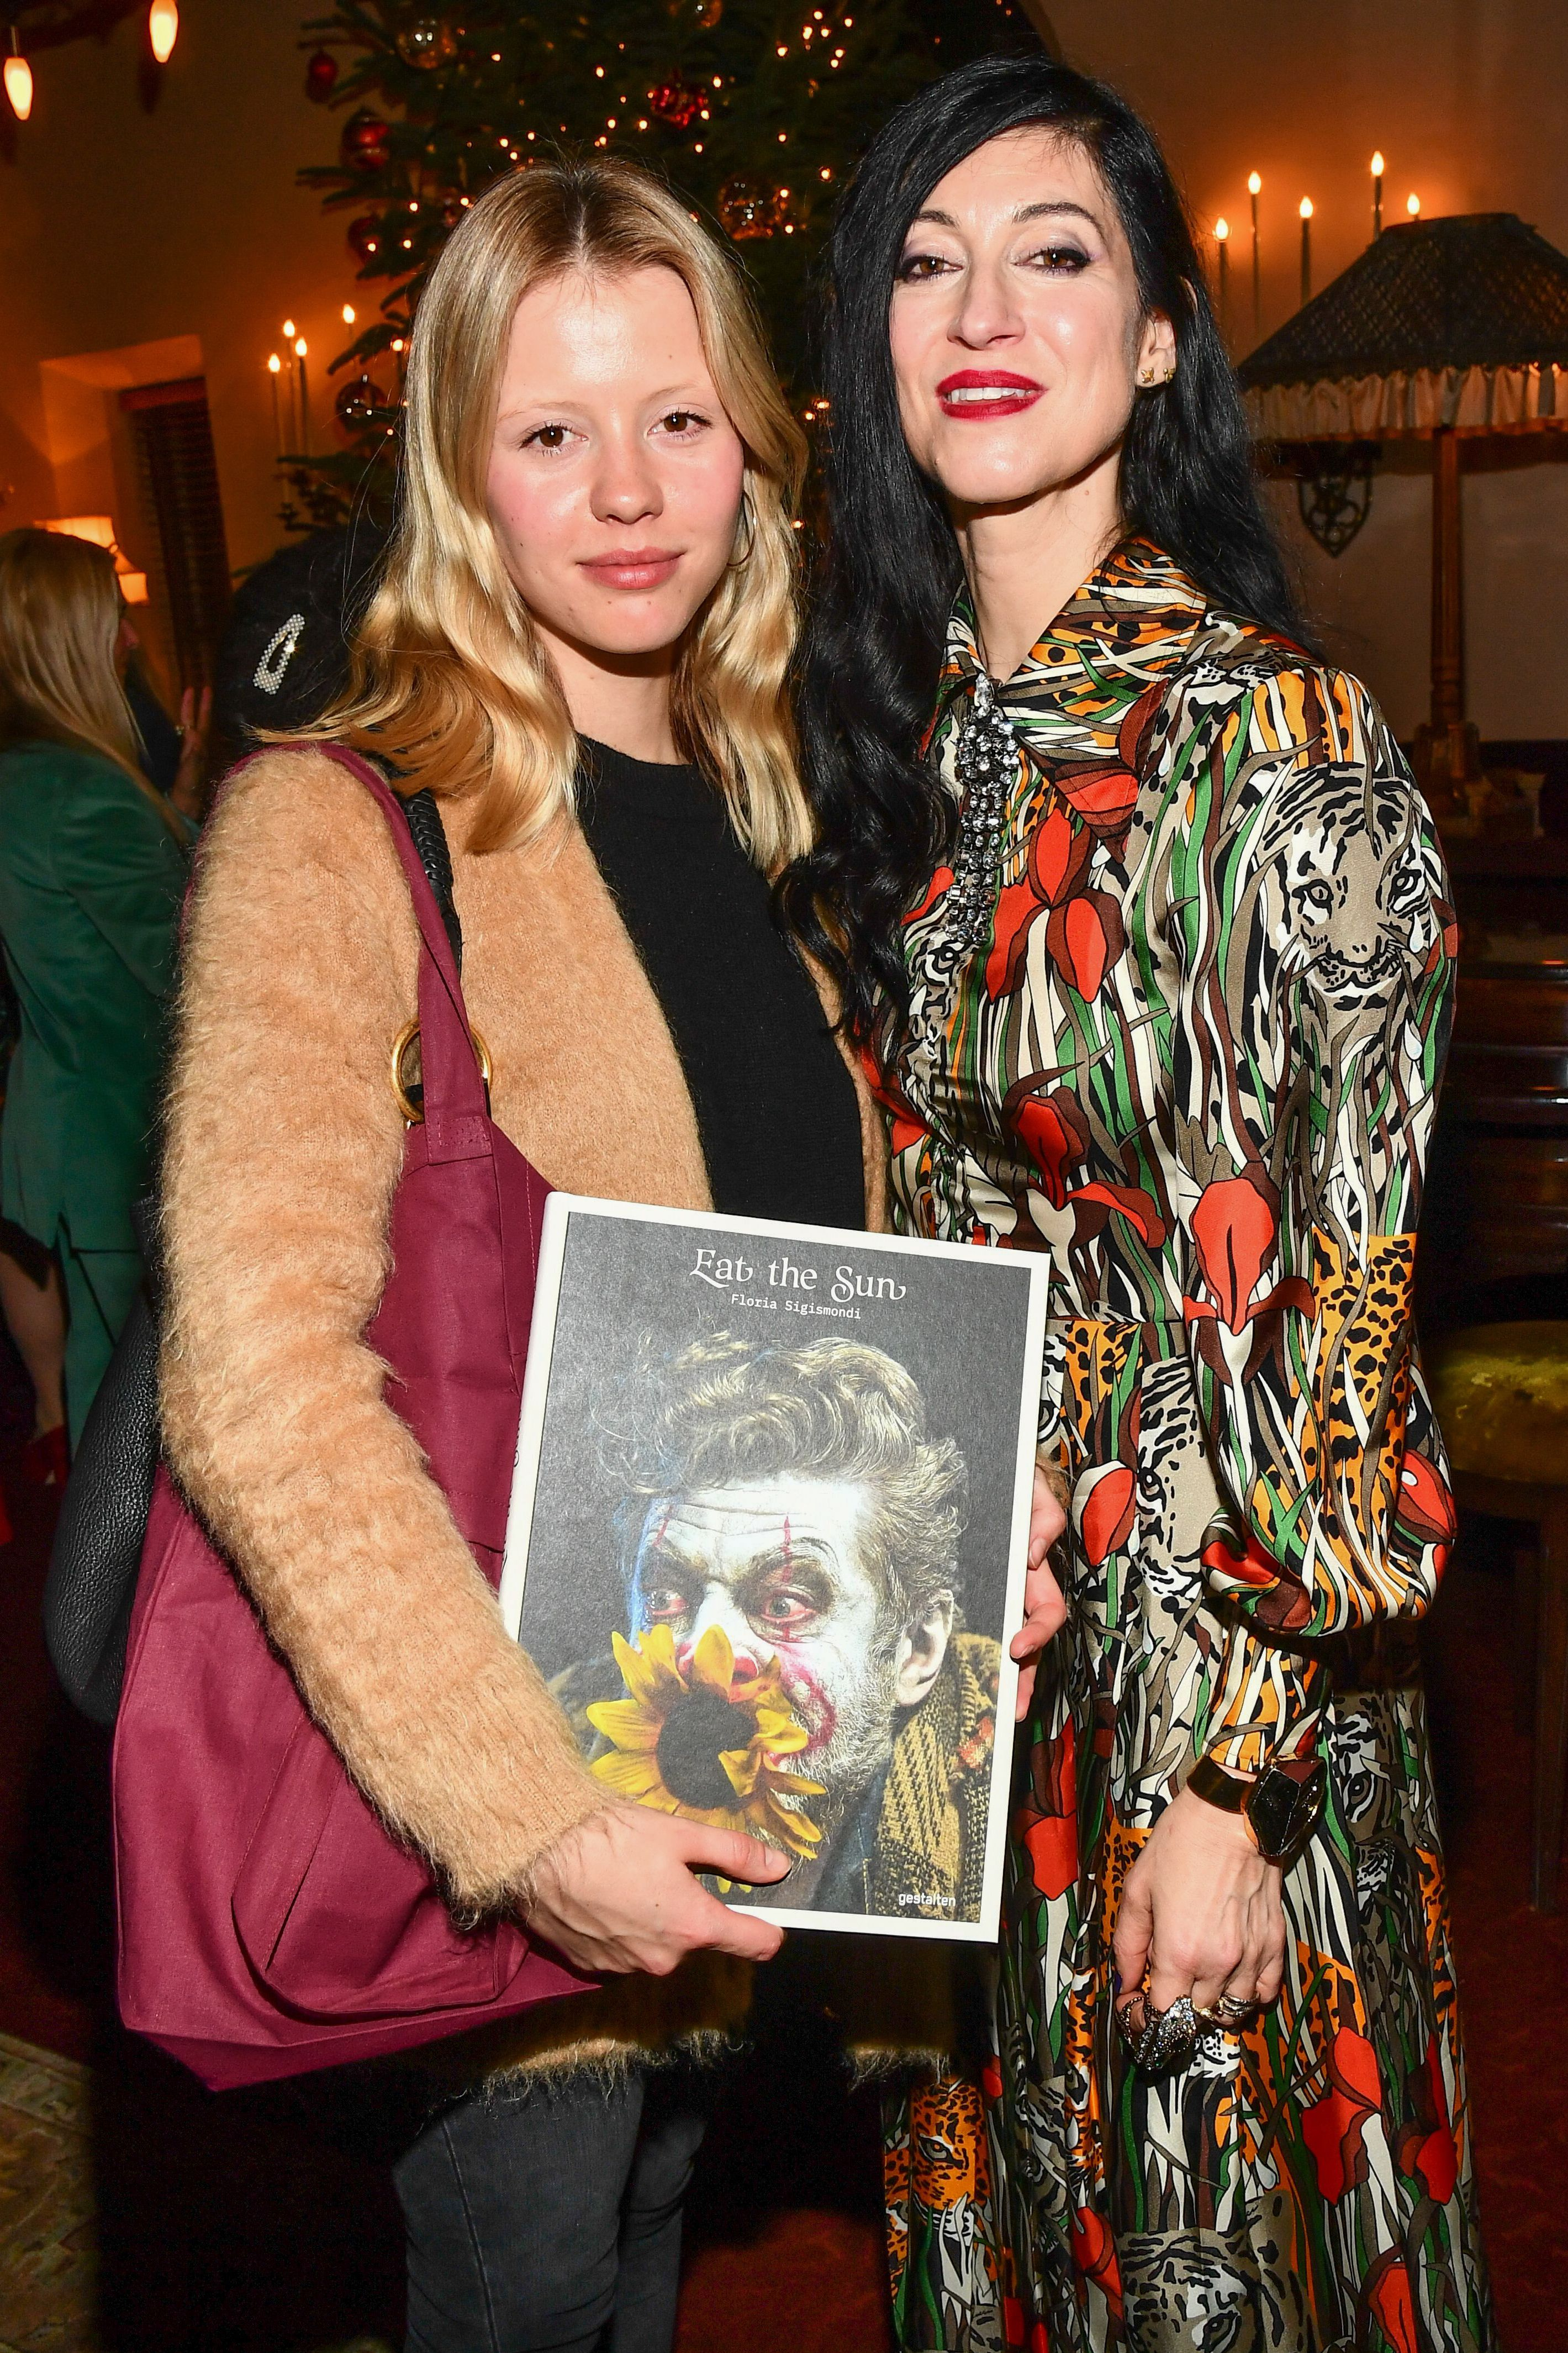 Mia Goth and Floria Sigismondi